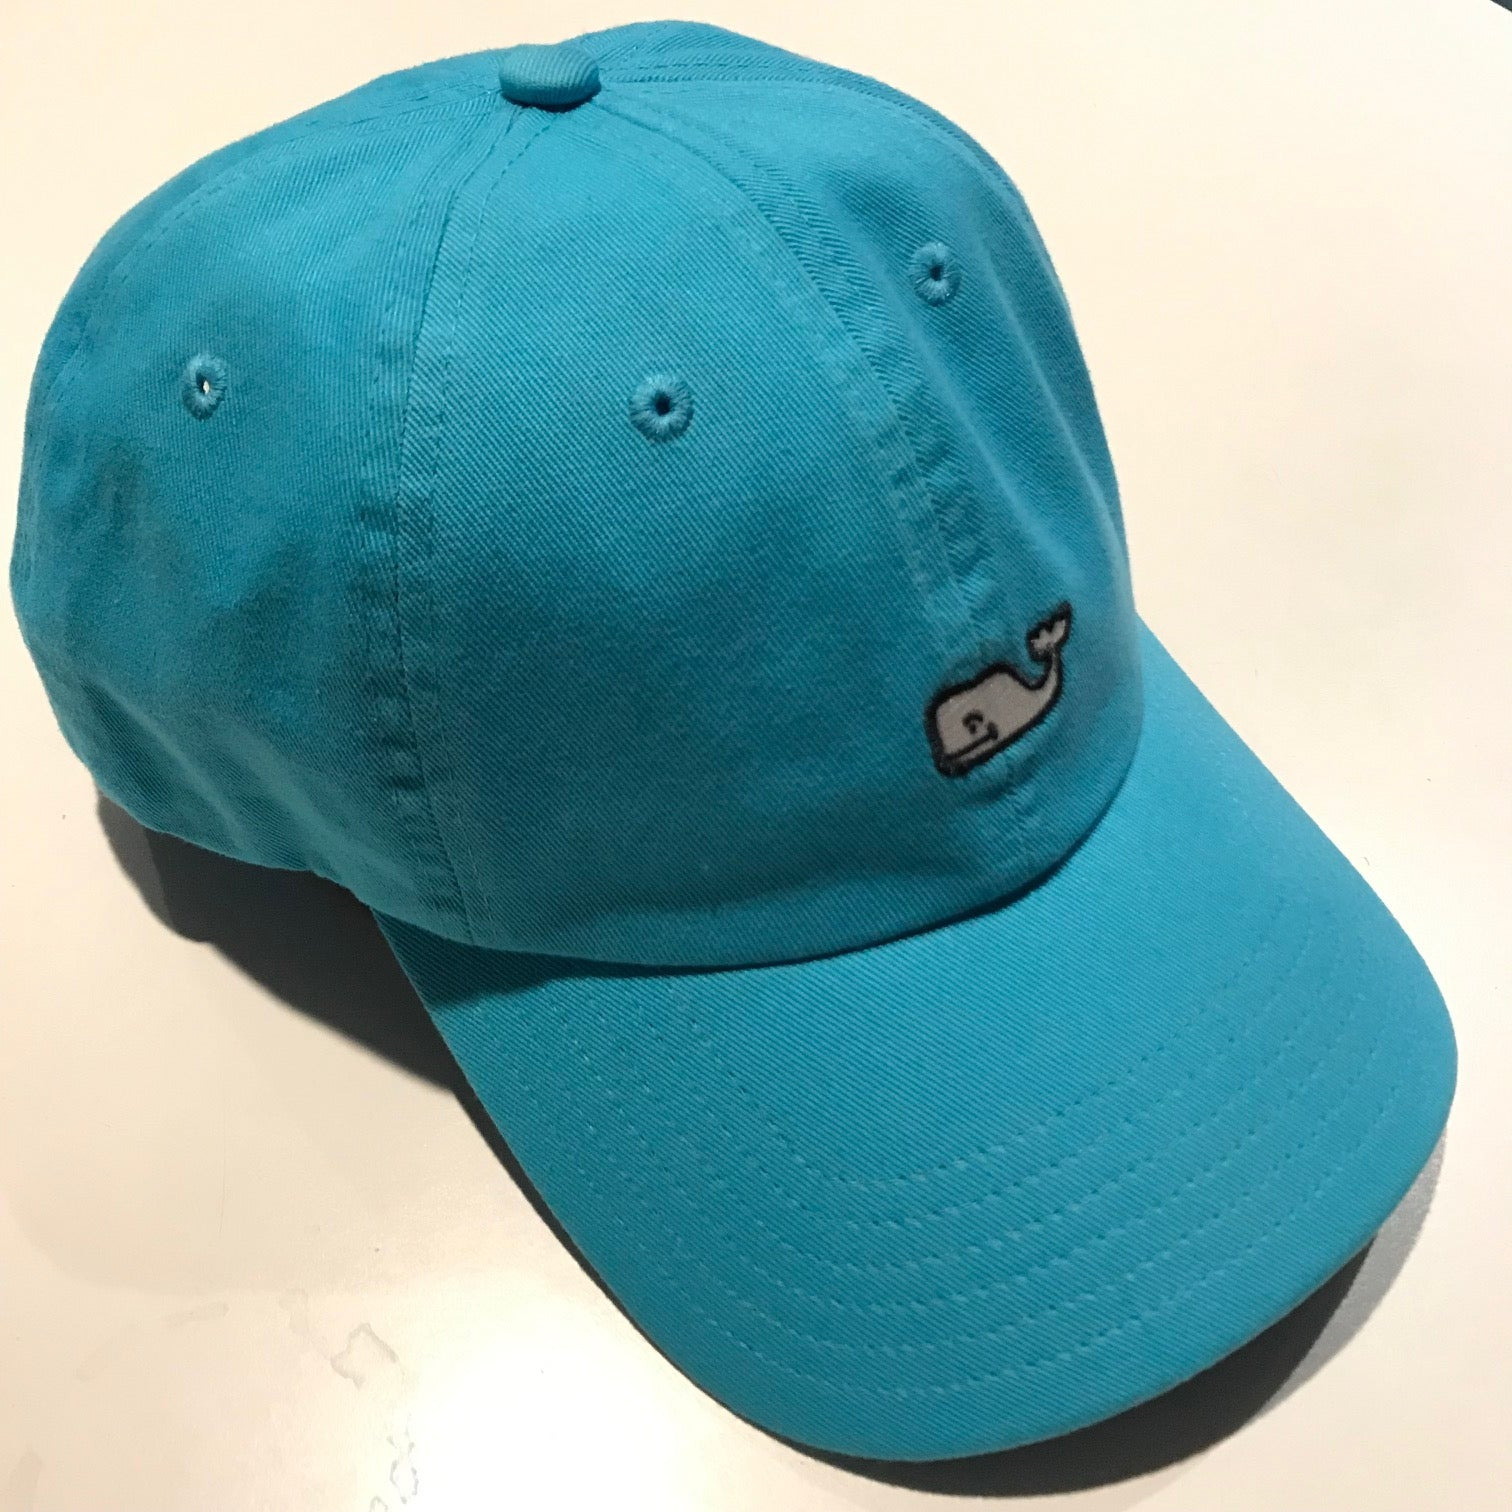 fe72600e7 Men's Vineyard Vines | Whale Logo Baseball Hat | Aqua Blue